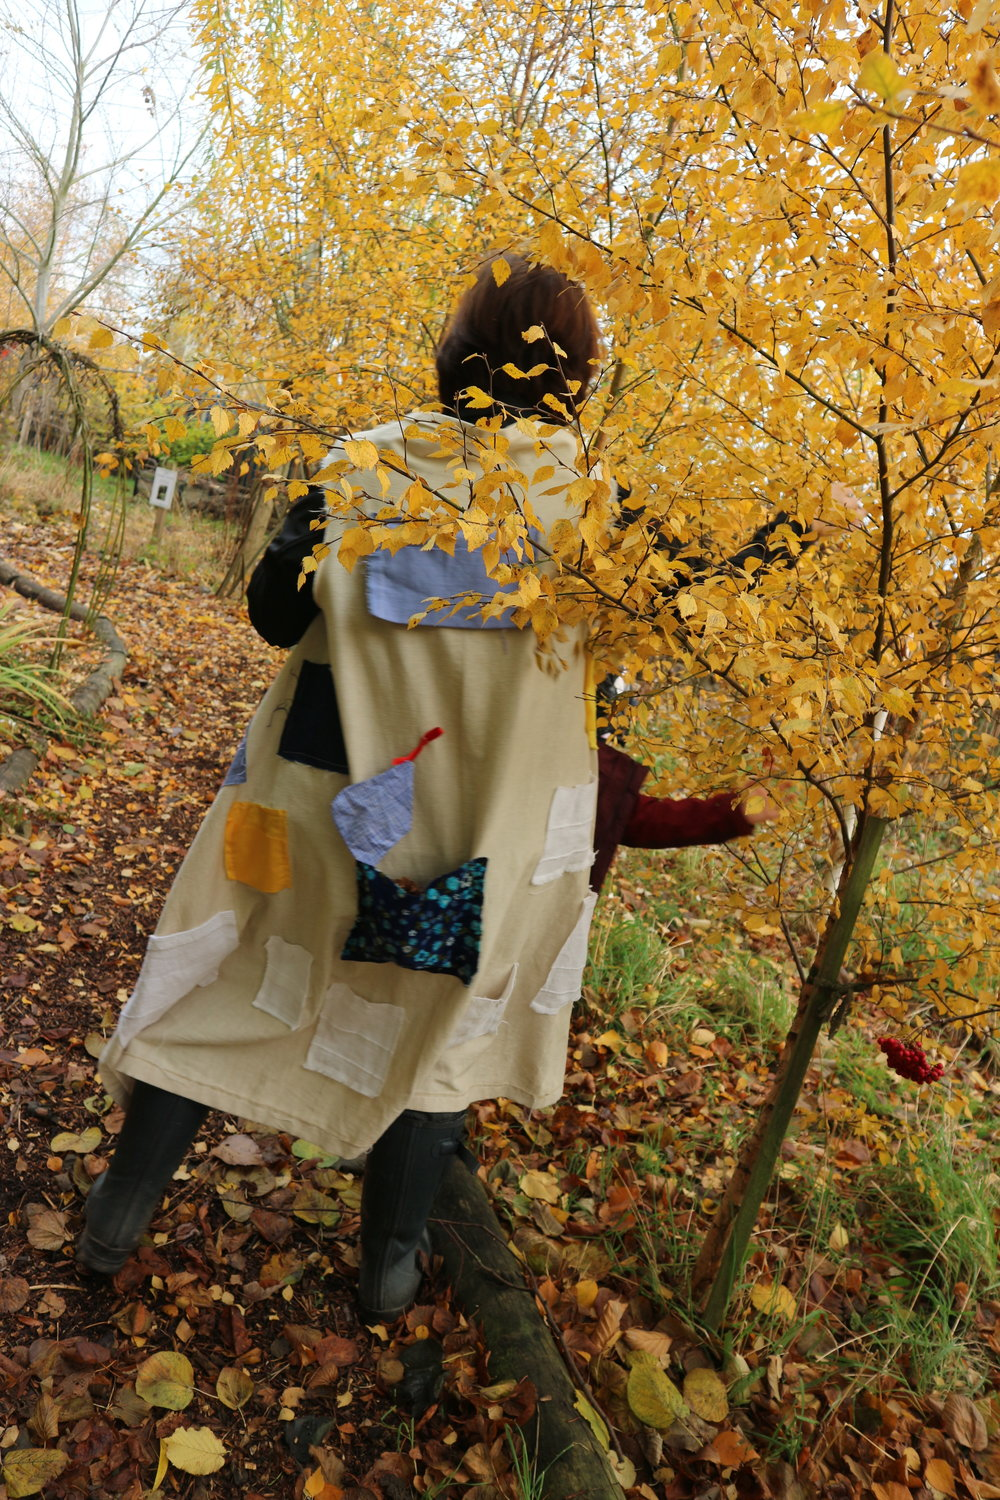 Finding autumn treasures - For the pocket coat, and for our dancing….what can you find?